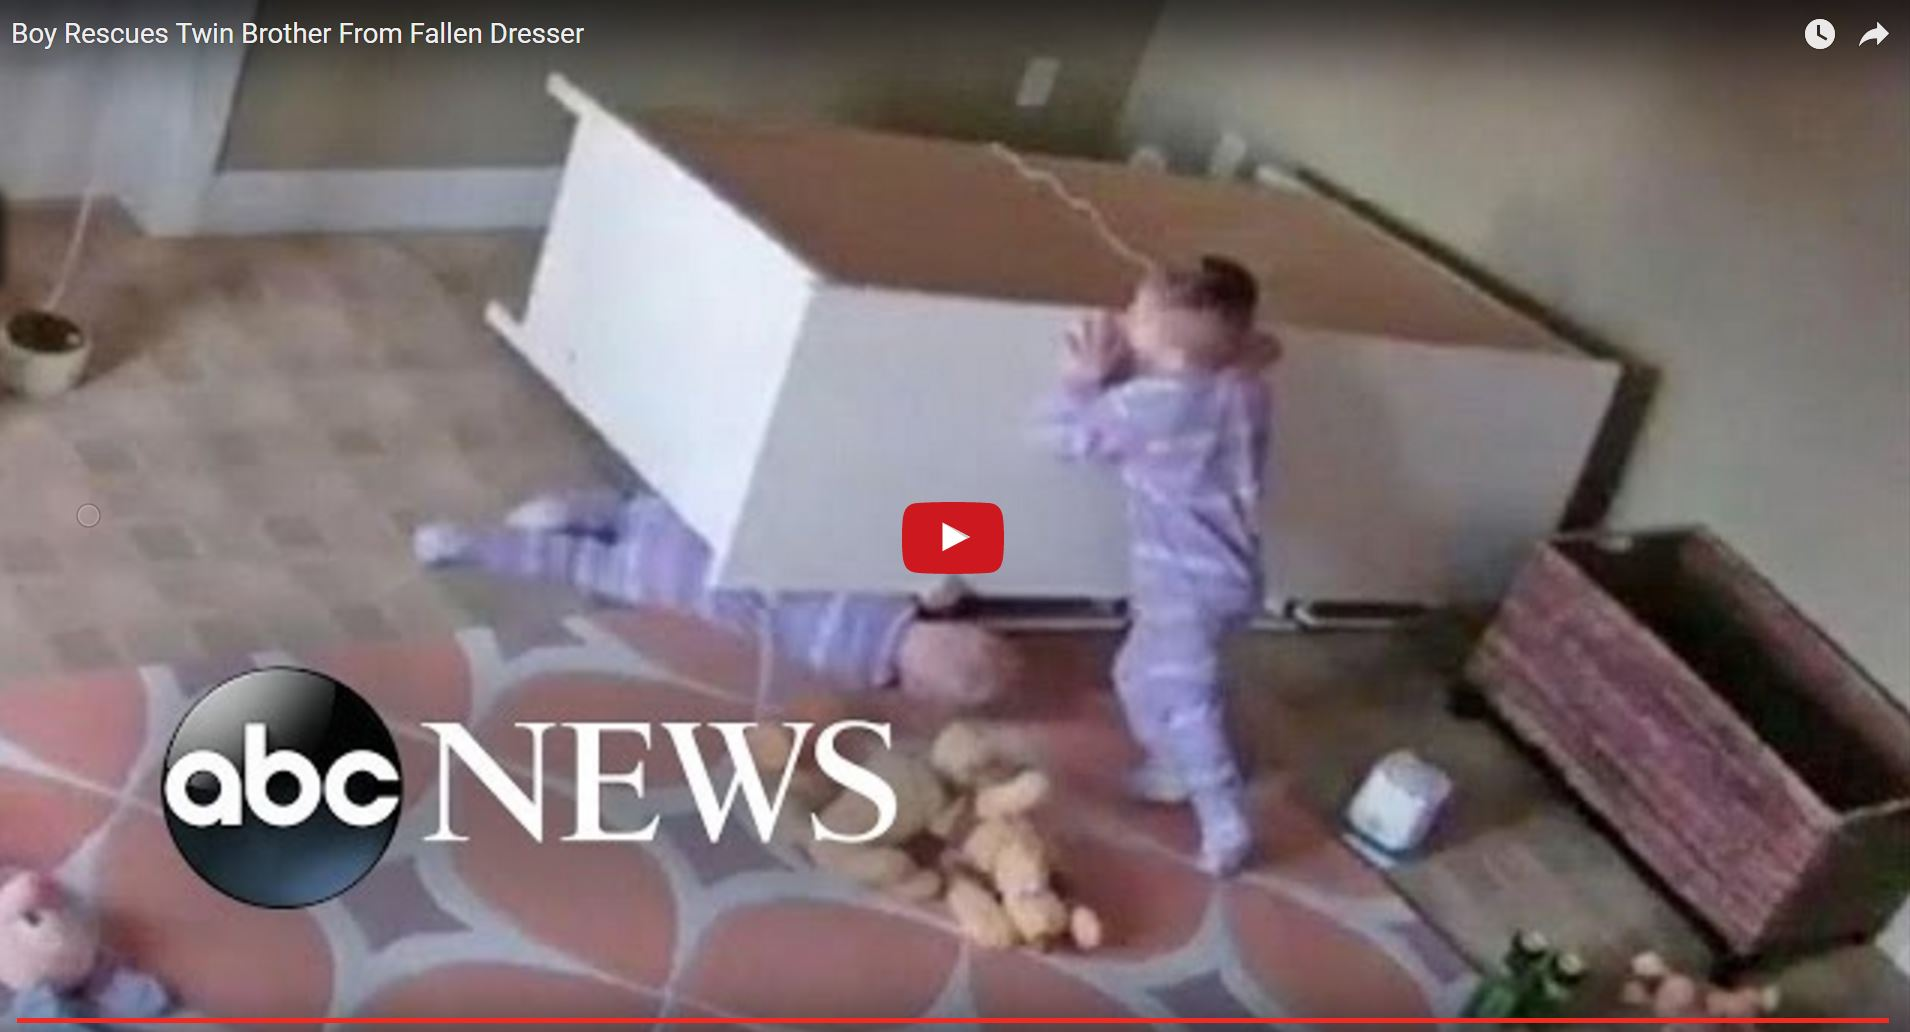 Twin brother rescues brother from fallen dresser